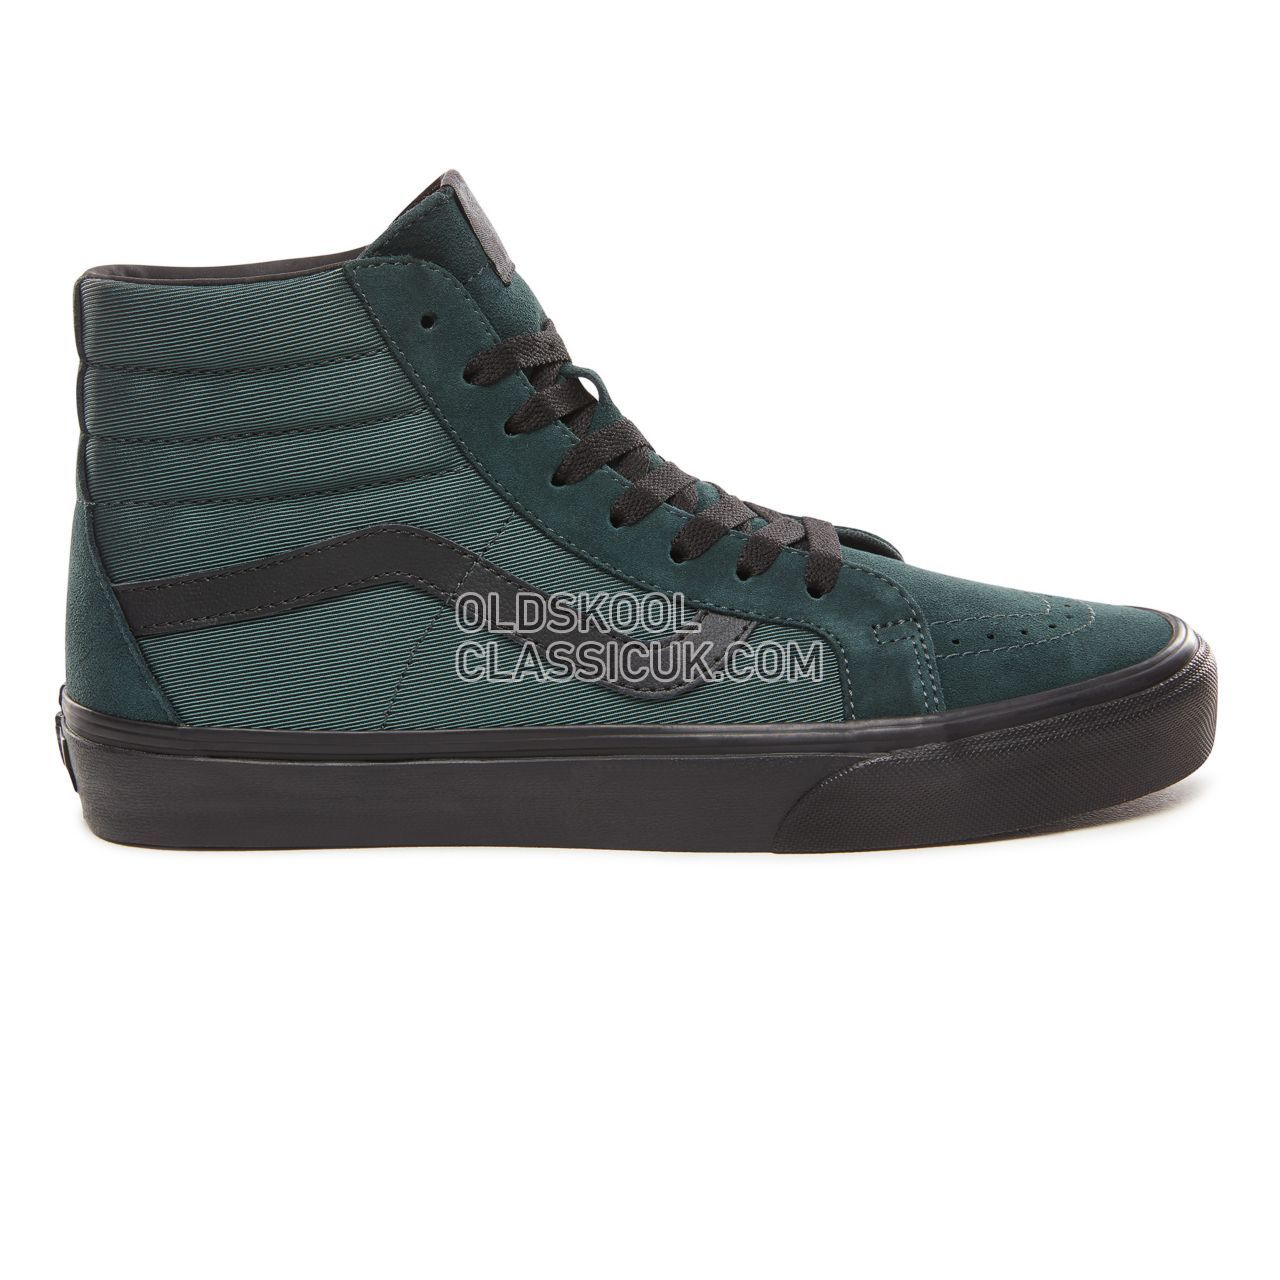 Vans Metallic Twill Sk8-Hi Reissue Sneakers Mens (Metallic Twill) Darkest Spruce/Black VN0A2XSBUQM Shoes